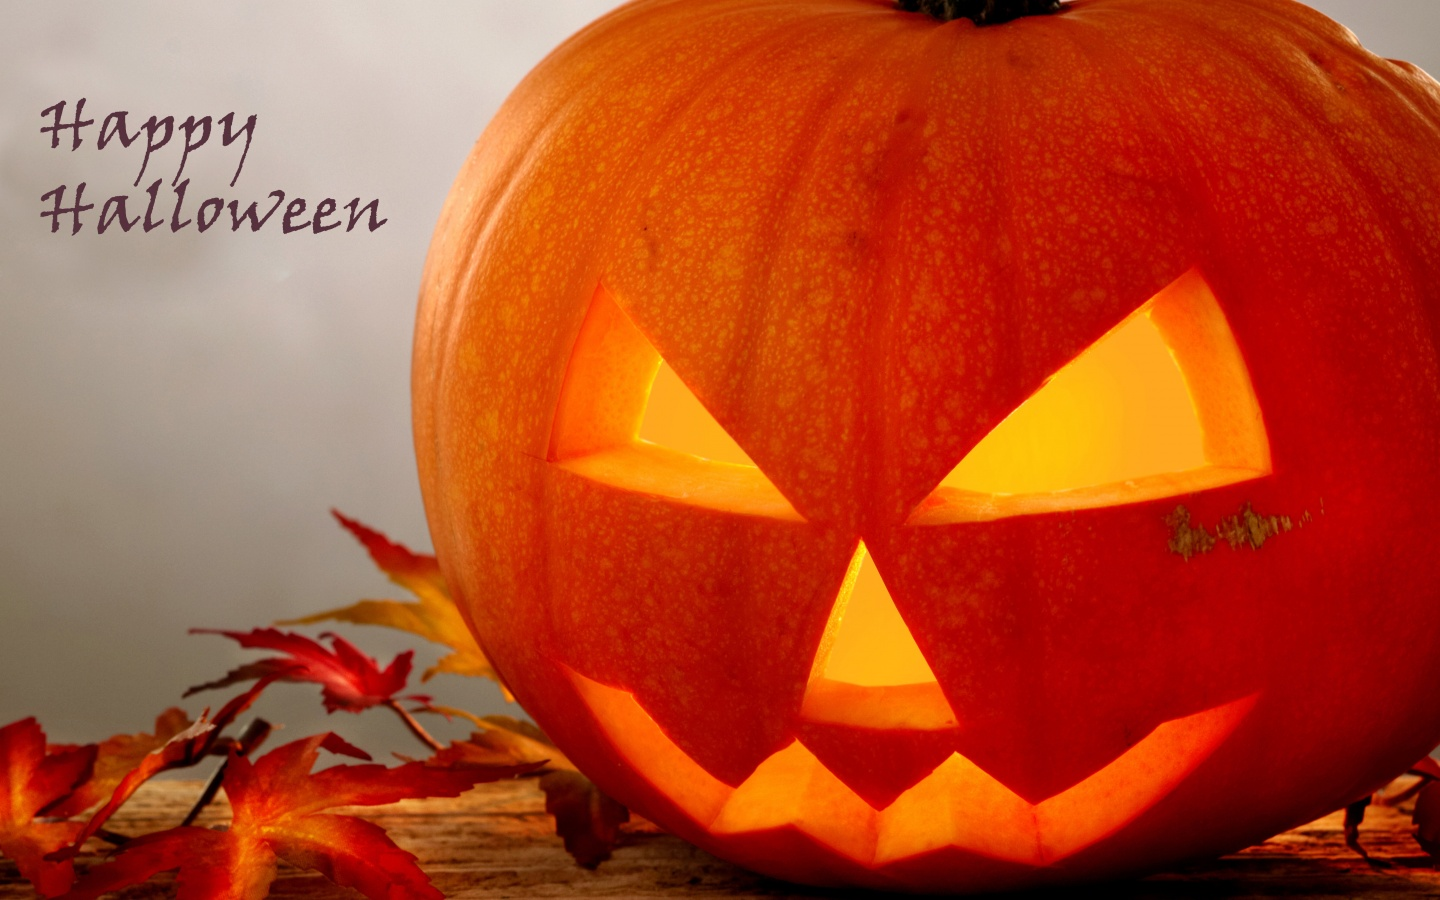 31 October Halloween